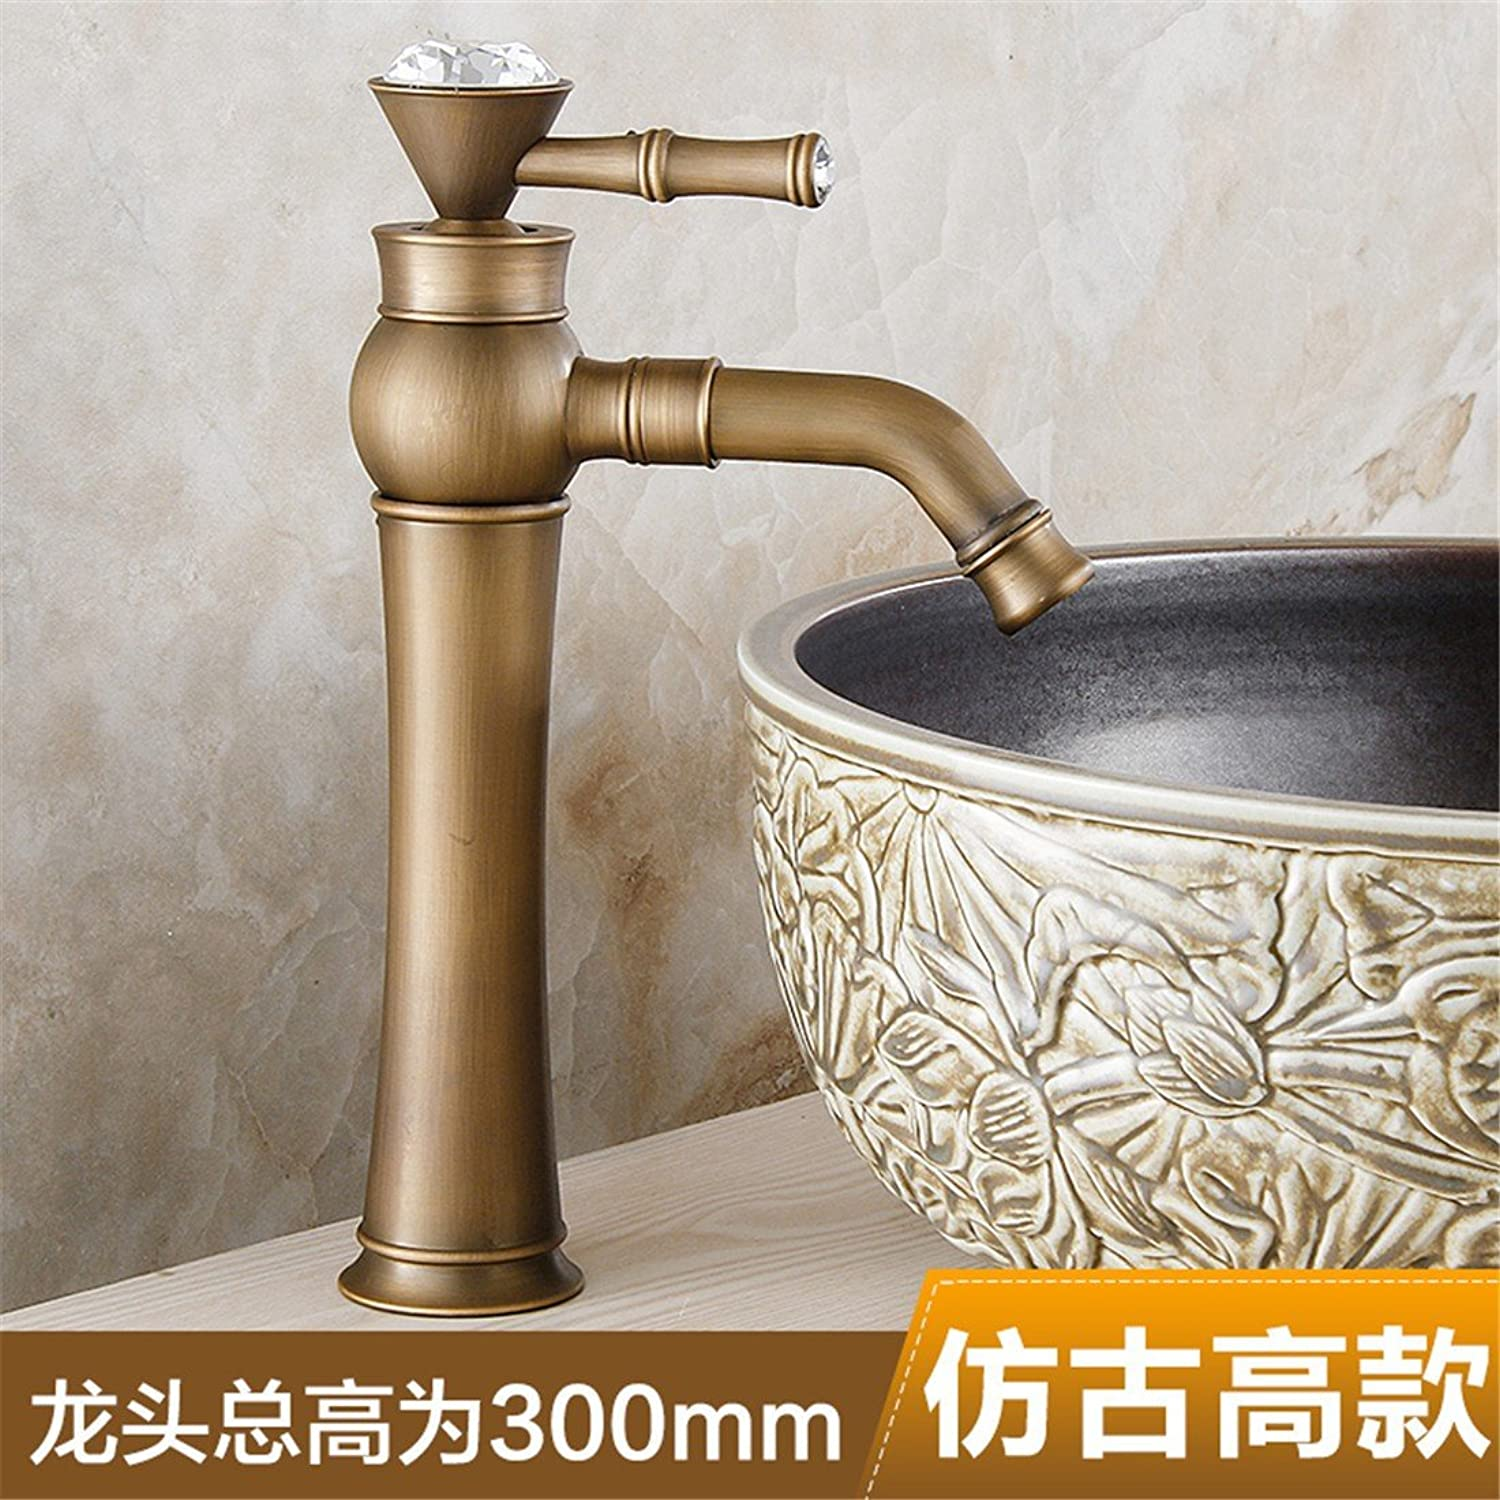 Hlluya Professional Sink Mixer Tap Kitchen Faucet The redation of the whole copper basin faucet antique bench lowered basin faucet and cold water washing your face, antique high